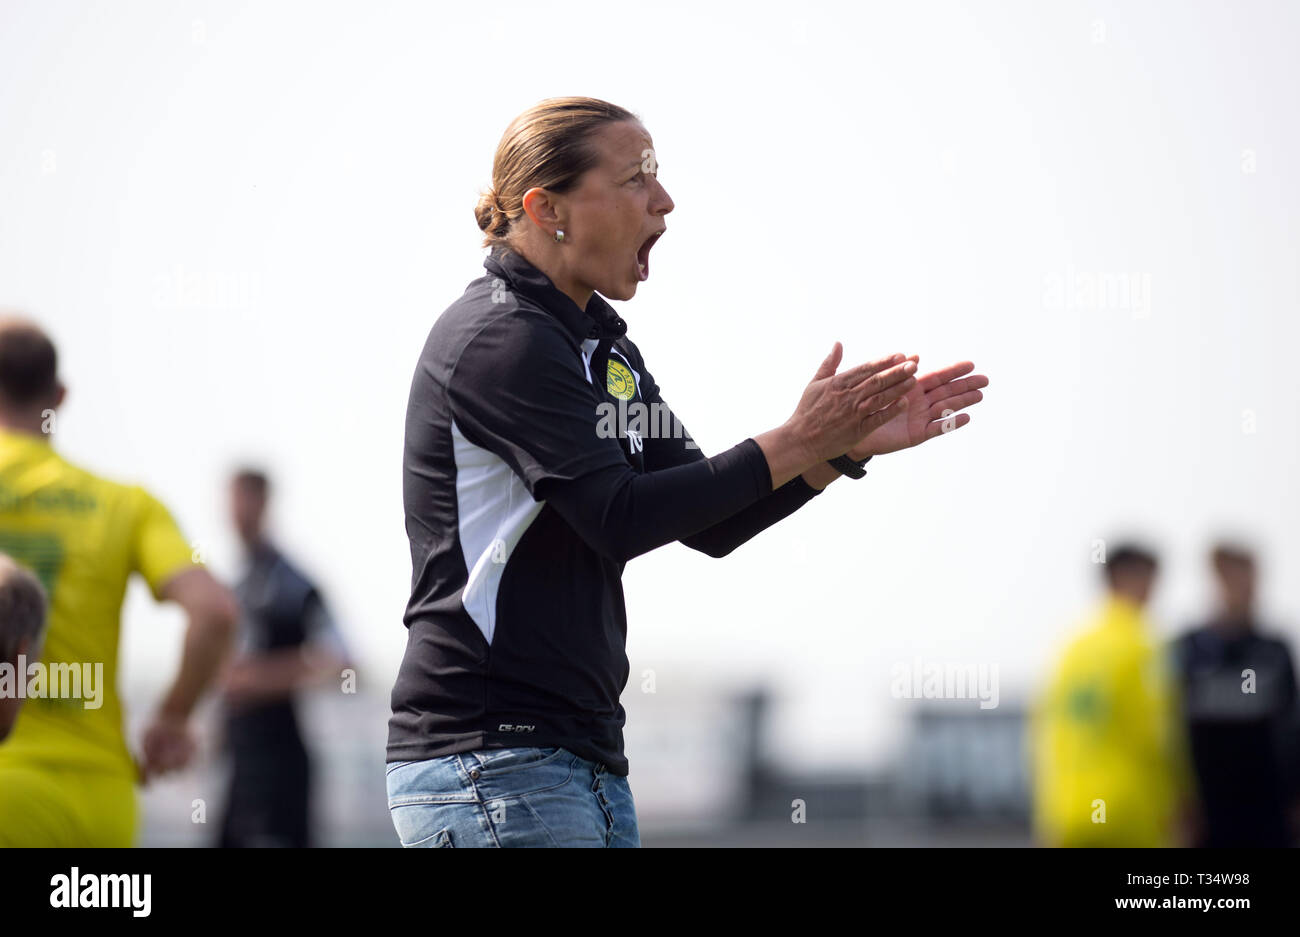 Straelen, Germany. 06th Apr, 2019. Soccer: Regionalliga West, SV Straelen - SC Verl, 28th matchday. Inka Grings, coach of SV Straelen, claps her hands. Grings is the first woman to take on a coaching position in the regional fourth division. Credit: Bernd Thissen/dpa/Alamy Live News - Stock Image